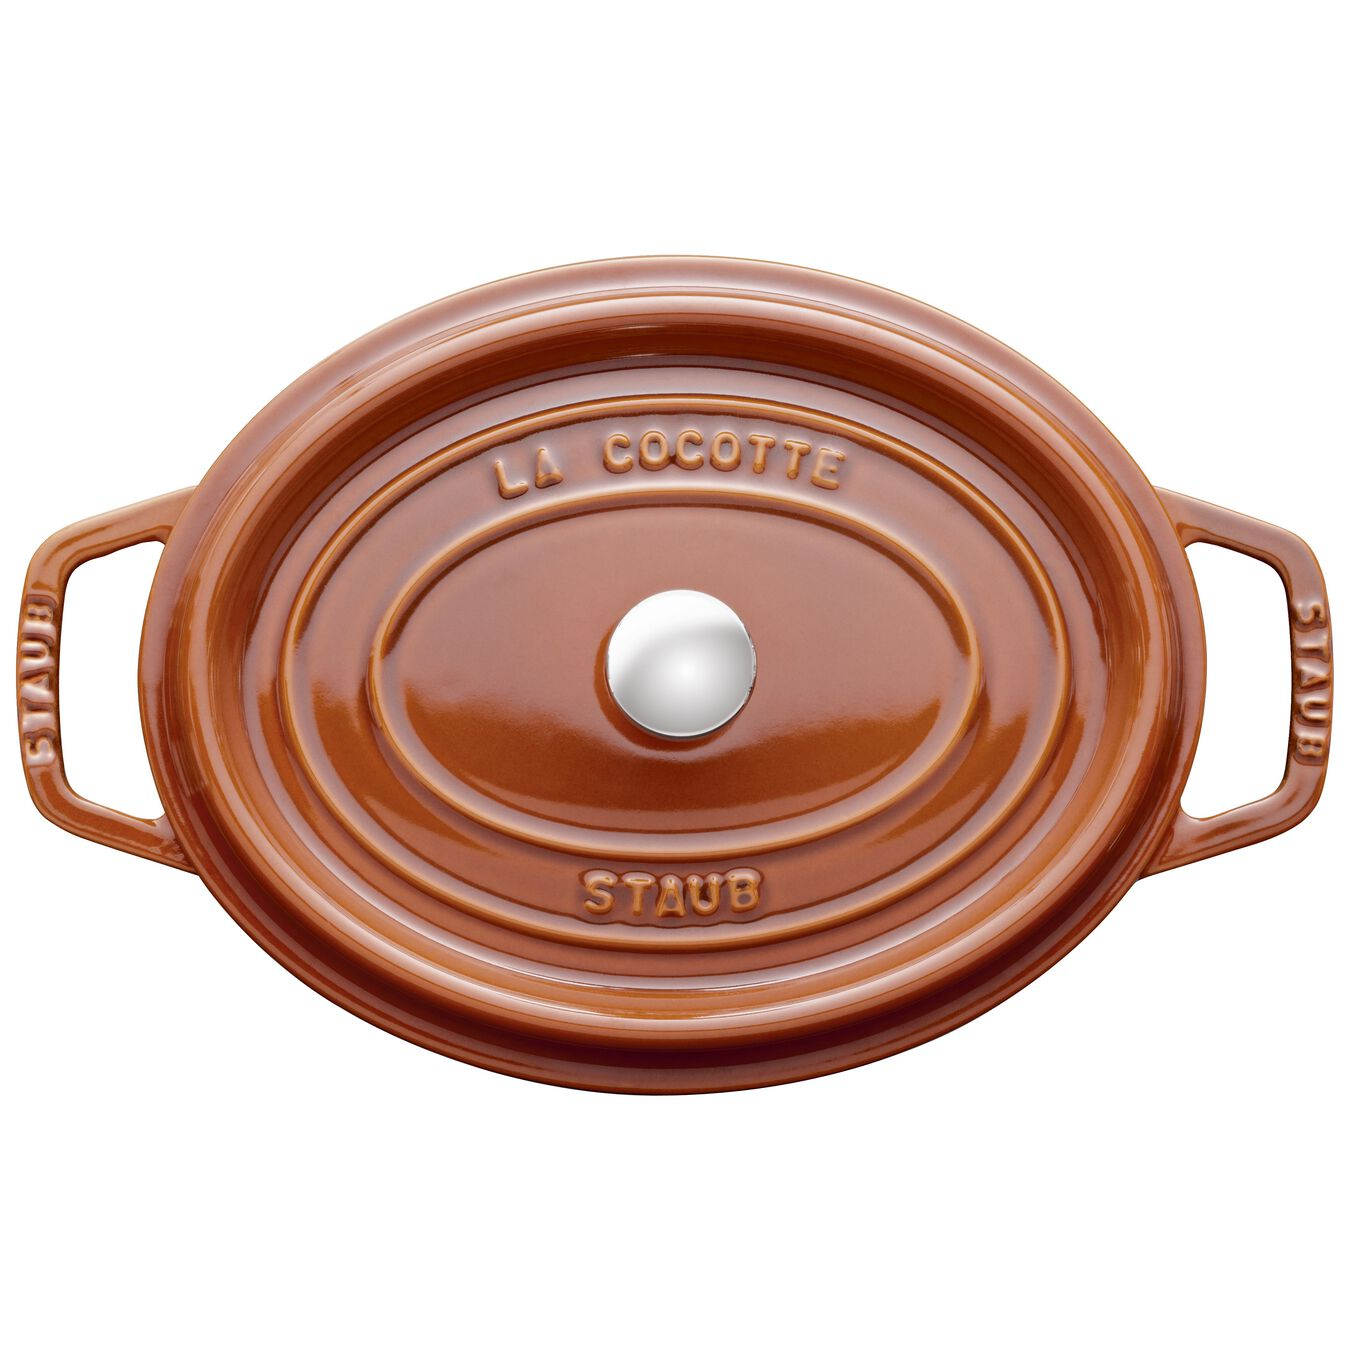 Cocotte ovale - 29 cm, cannella,,large 2